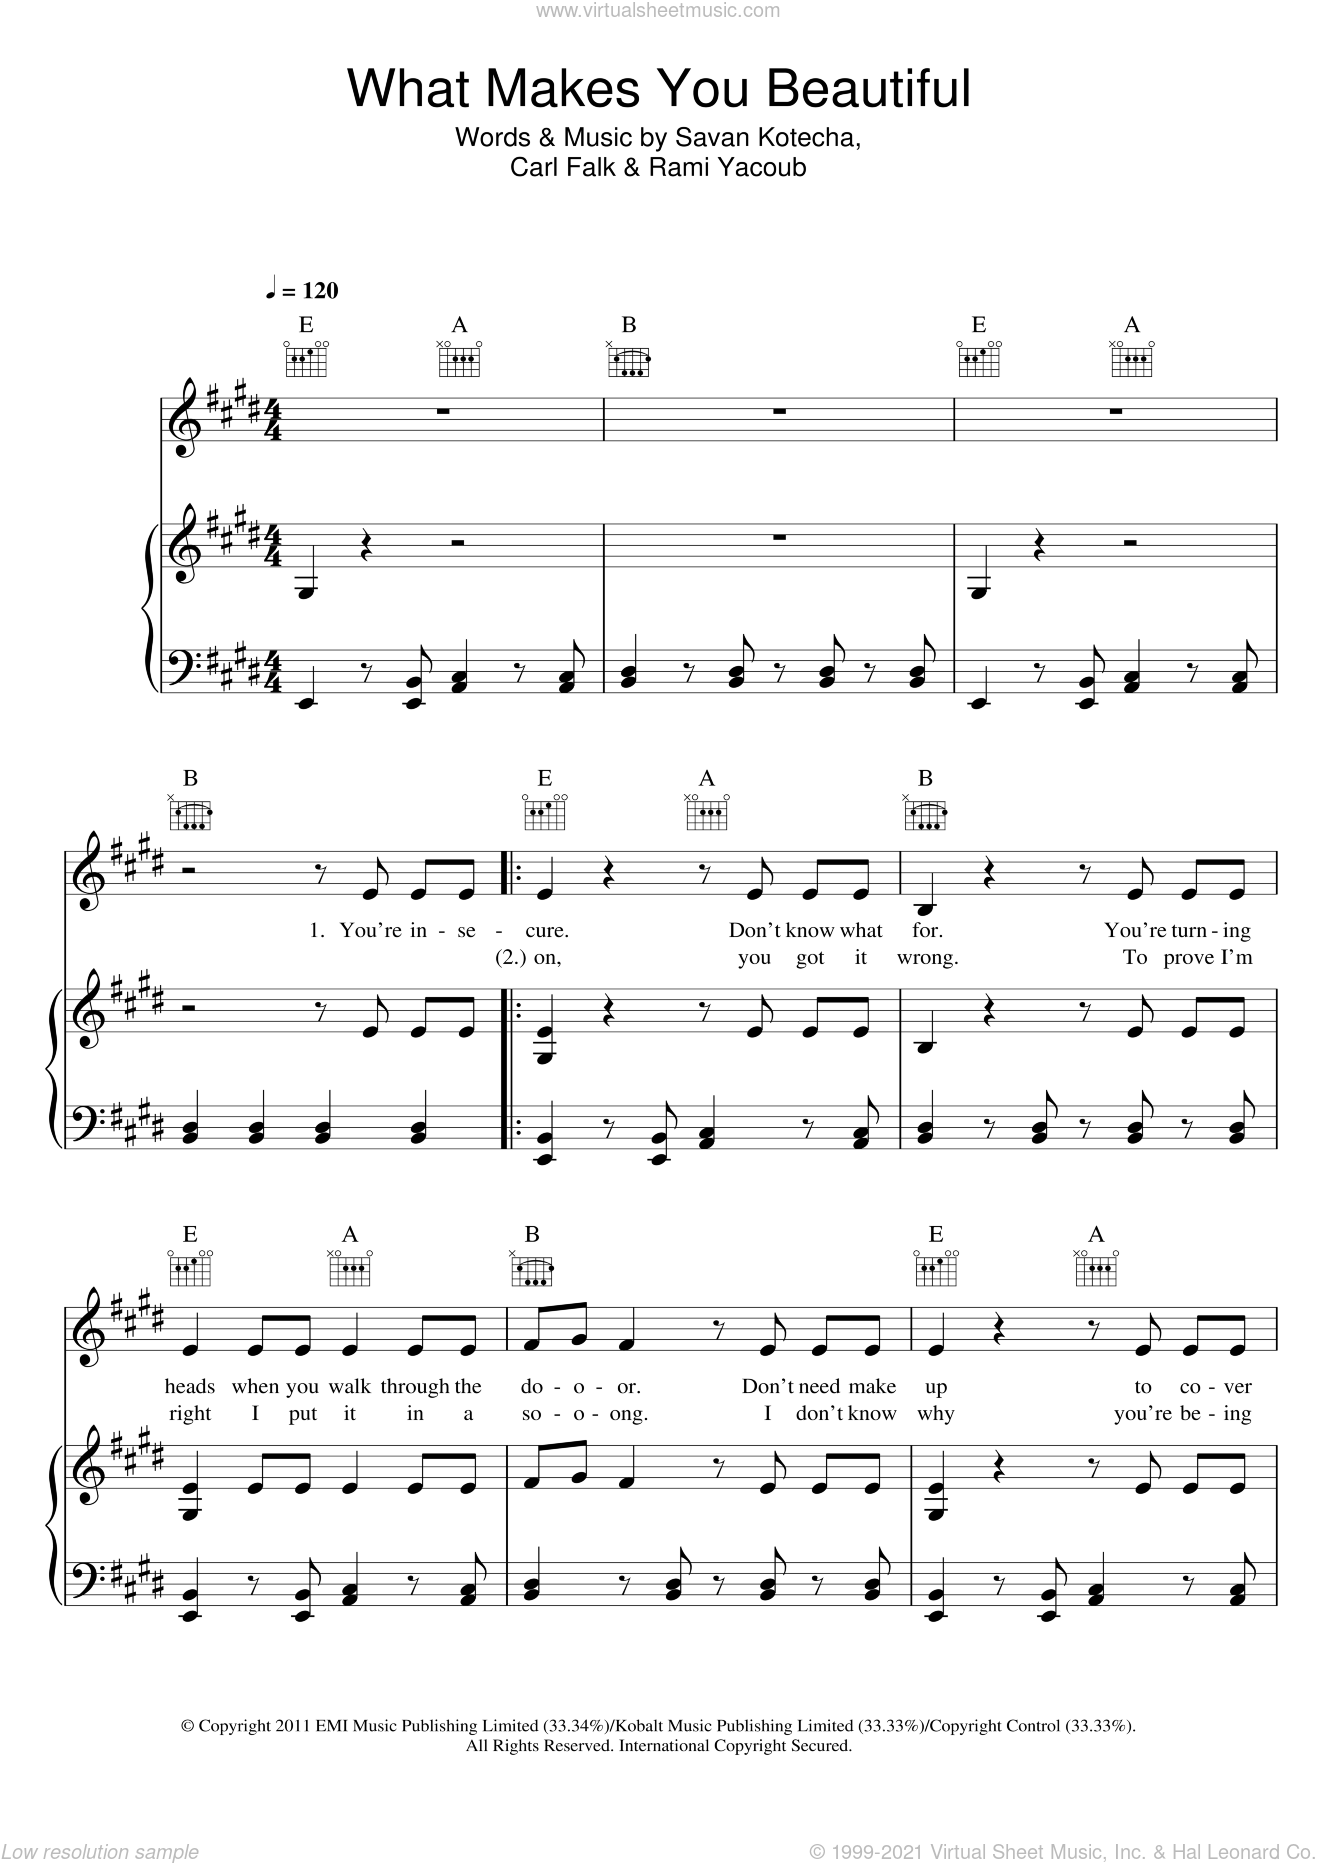 What Makes You Beautiful sheet music for voice, piano or guitar by Savan Kotecha